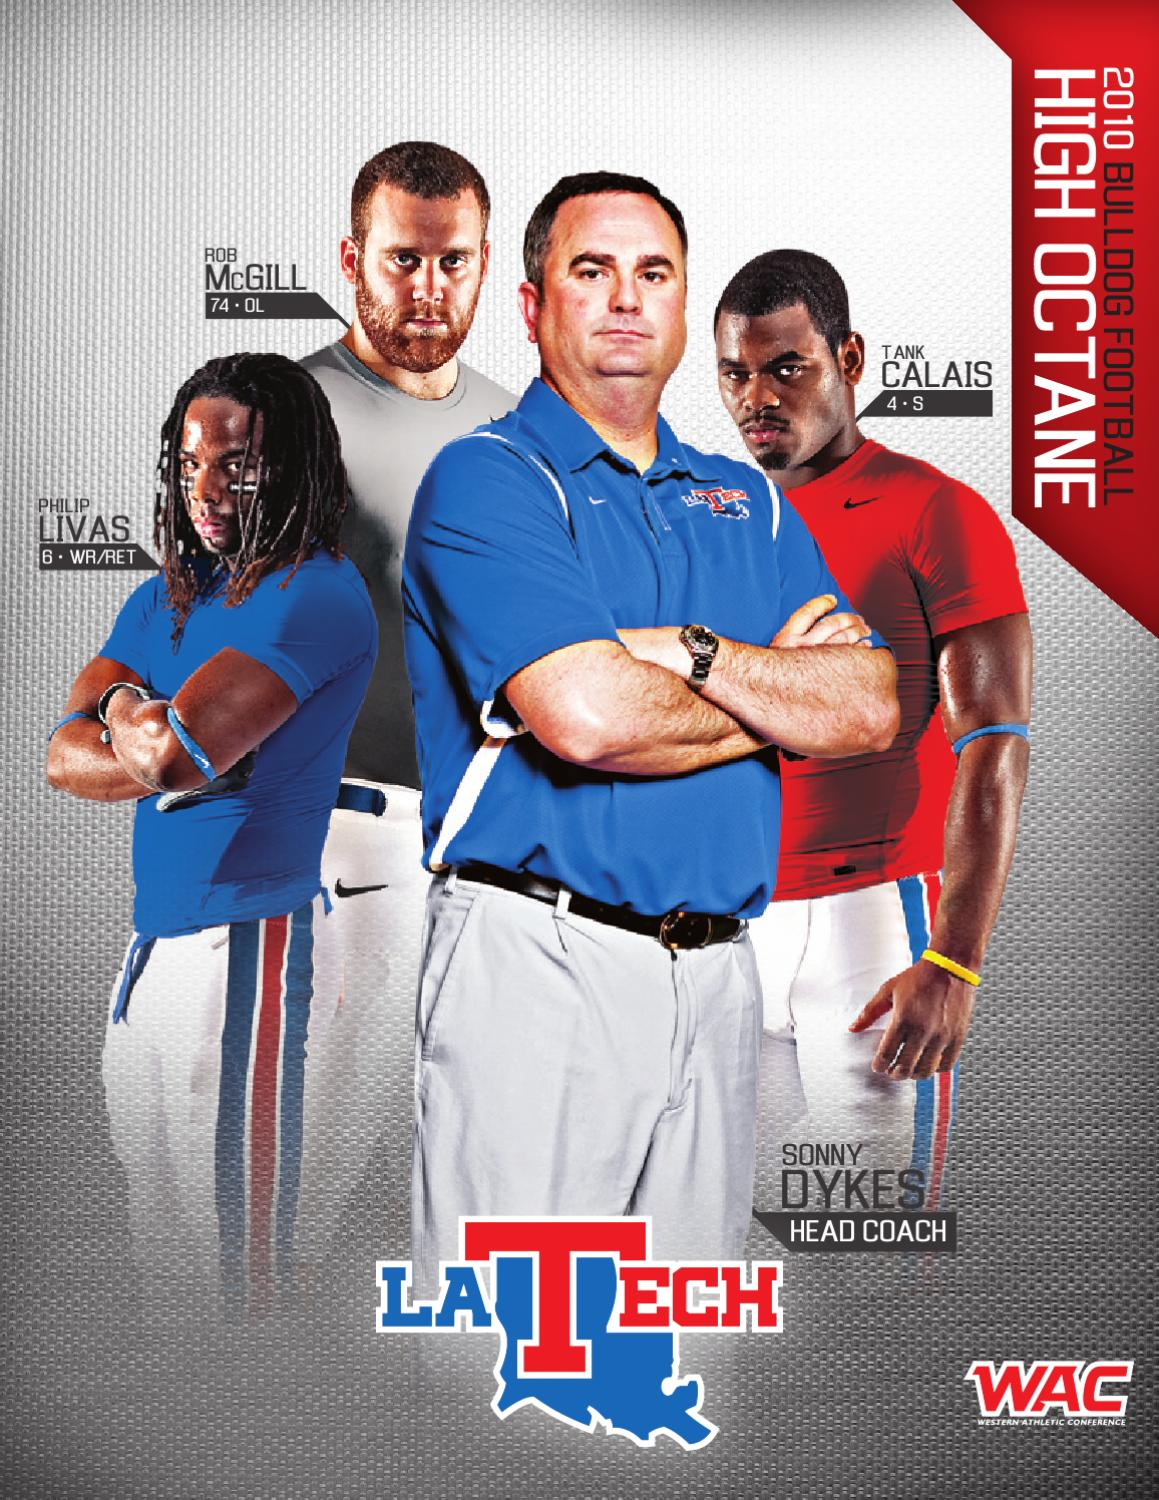 098421be2 2010 Louisiana Tech Football Media Guide by Louisiana Tech Athletics - issuu